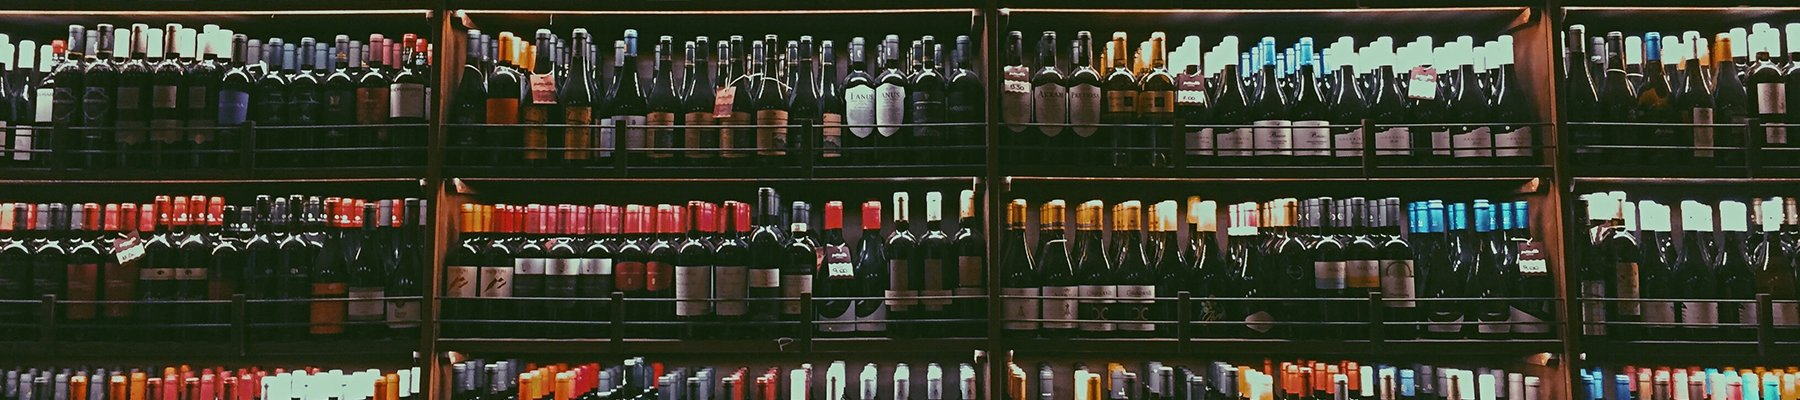 our wines - picture